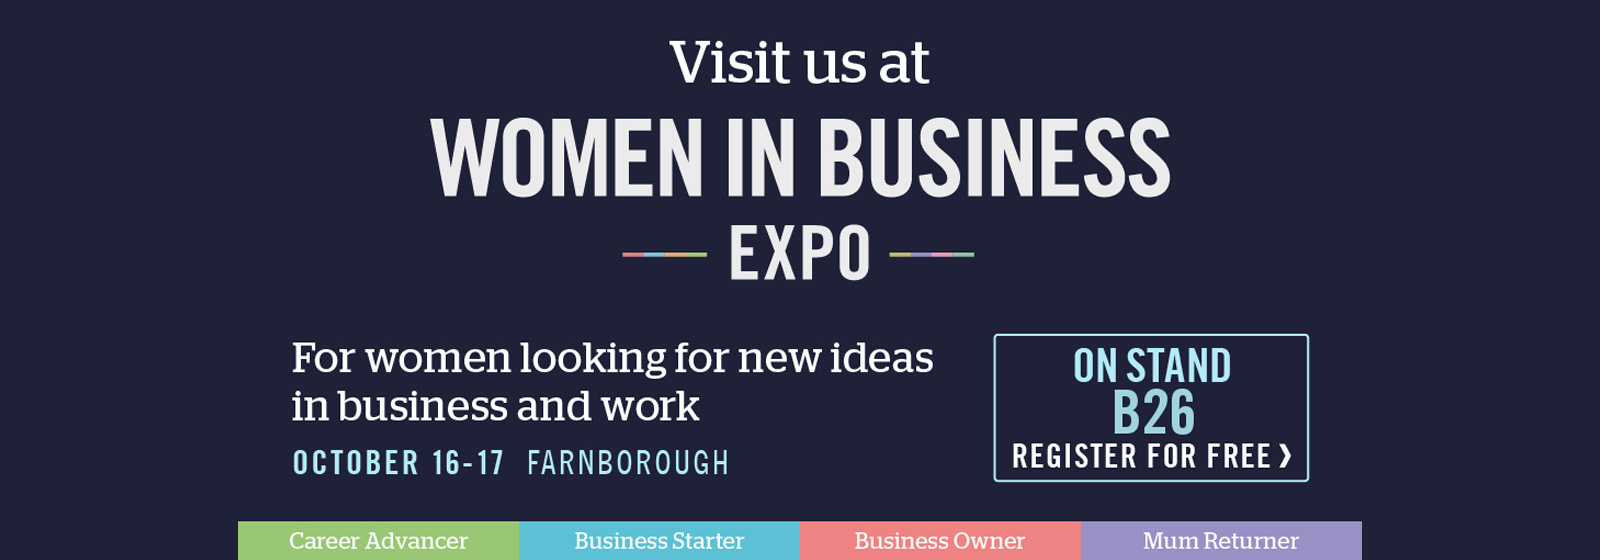 Visit us at Women in Business Expo